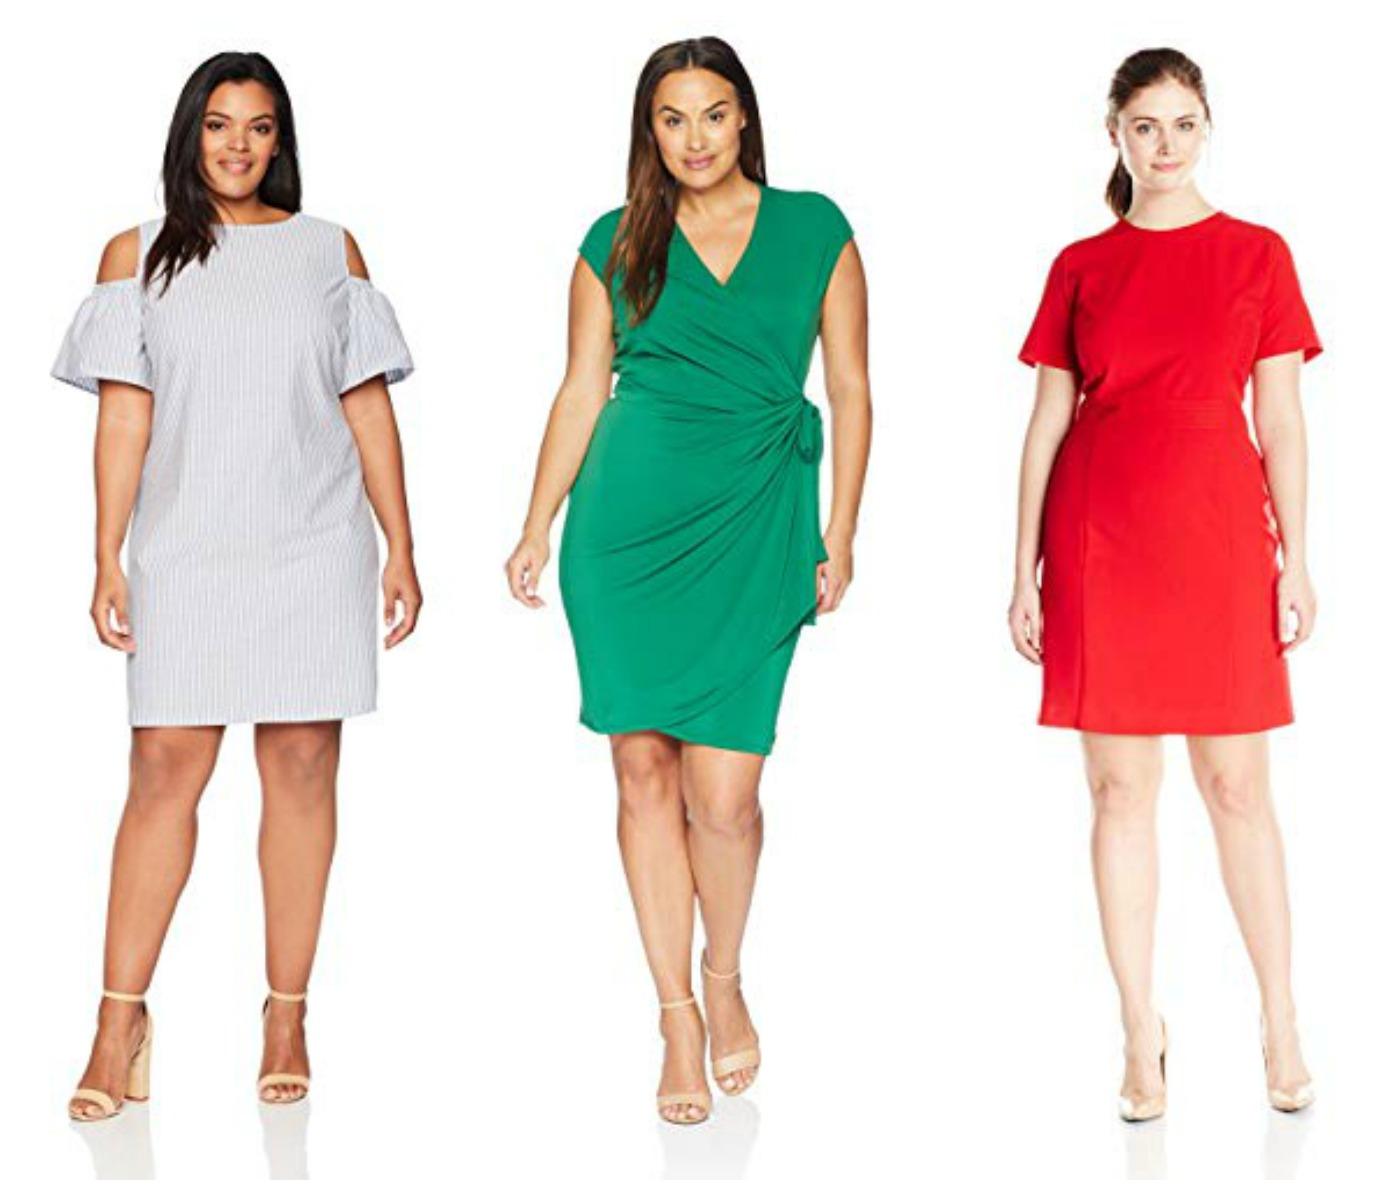 85db998b014a9 The Best Plus Size Clothing On Amazon Is From These 5 In House Brands